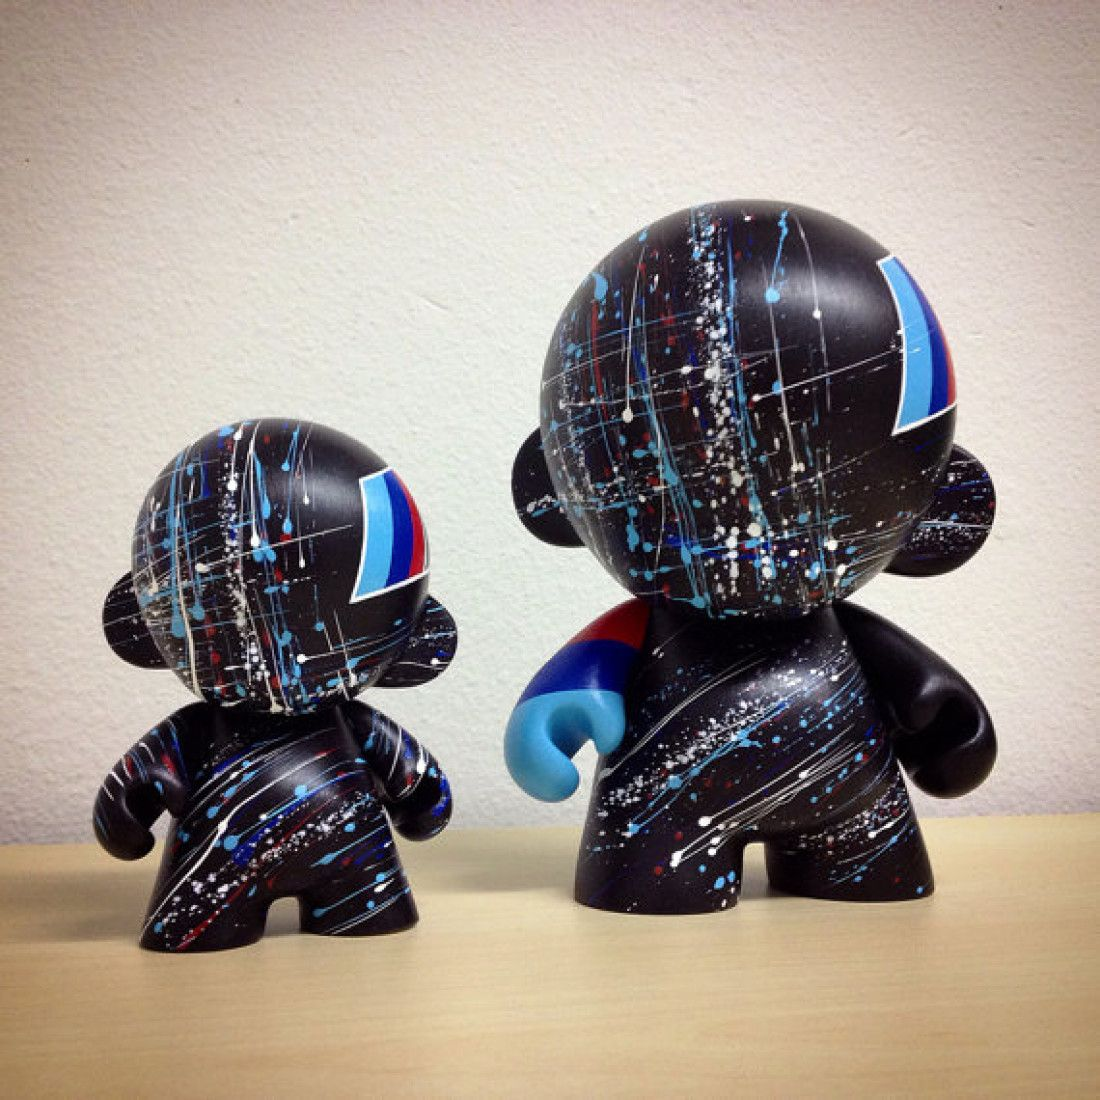 4inch 7inch Motorsport Munny hand painted by emKel